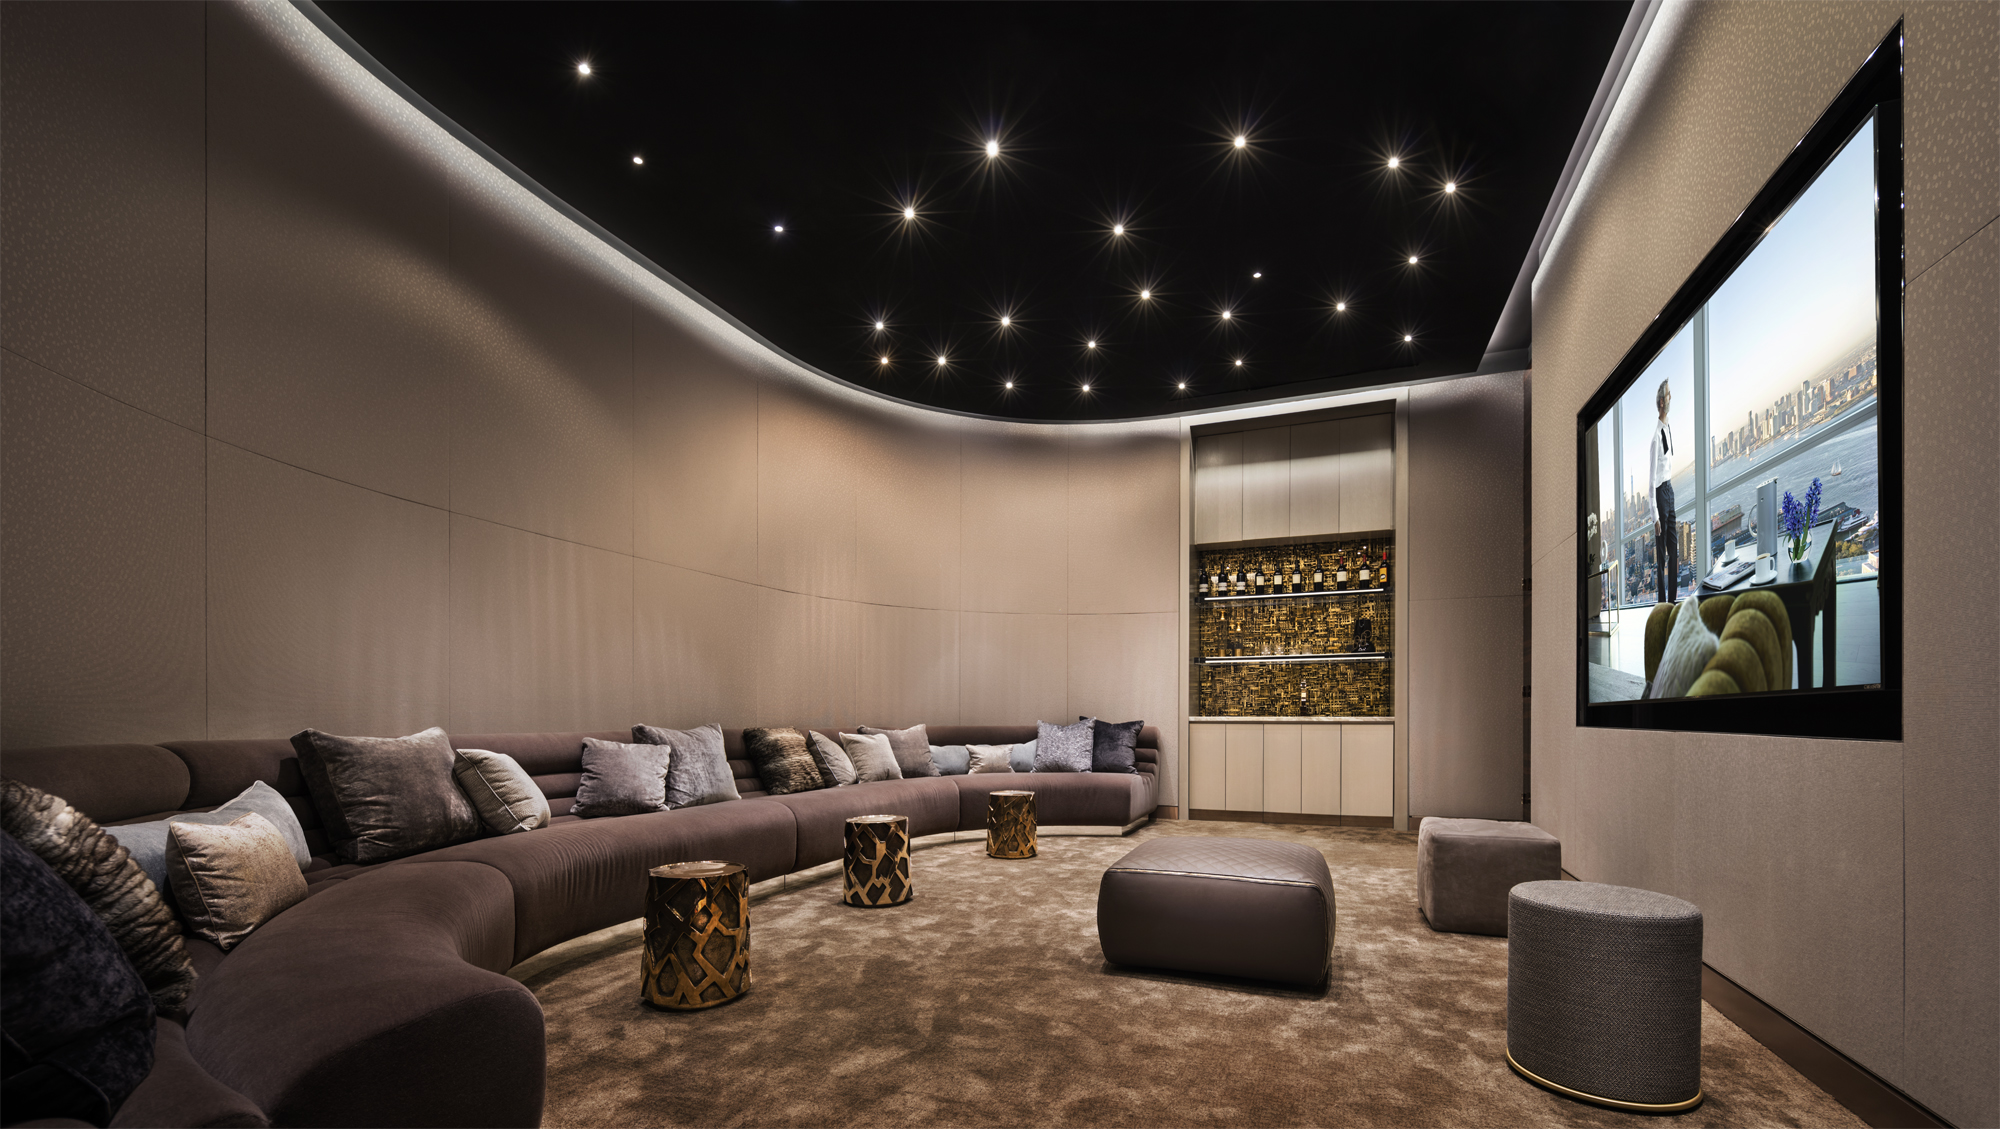 35 Hudson Yards_Amenities_Screening Room_Photo Courtesy of Related Companies by Scott Frances.jpg